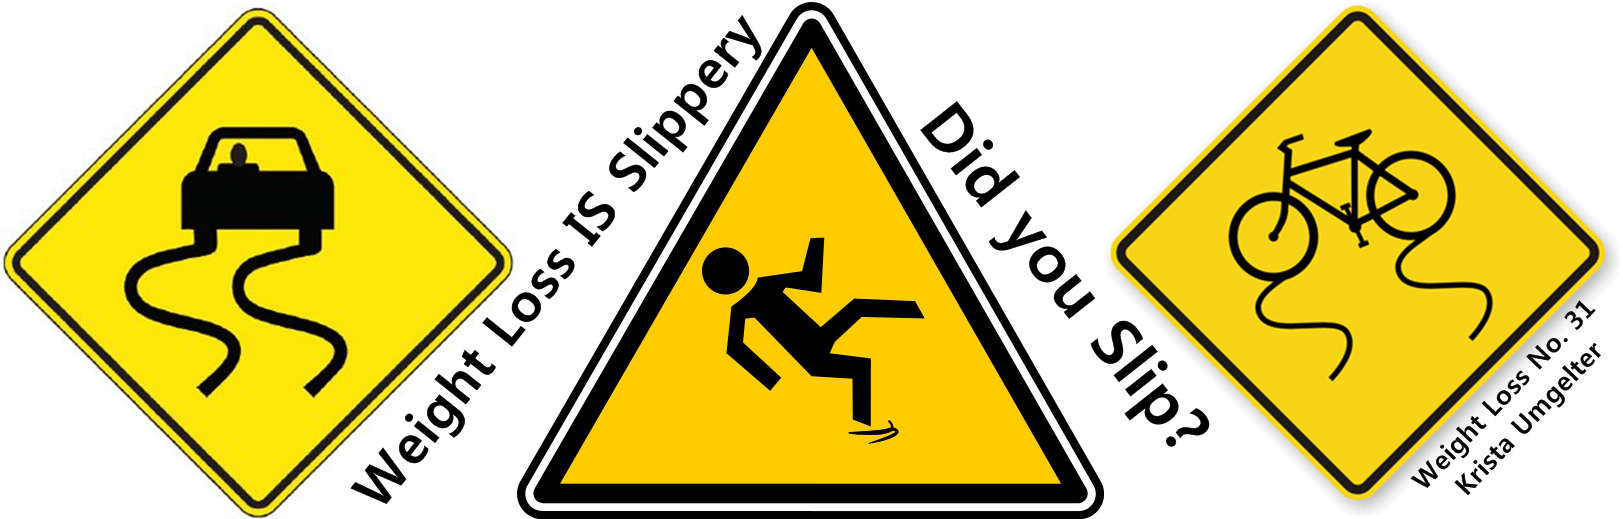 Weight Loss is Slippery. Did you slip? Are you about to? – Weight Loss No. 31